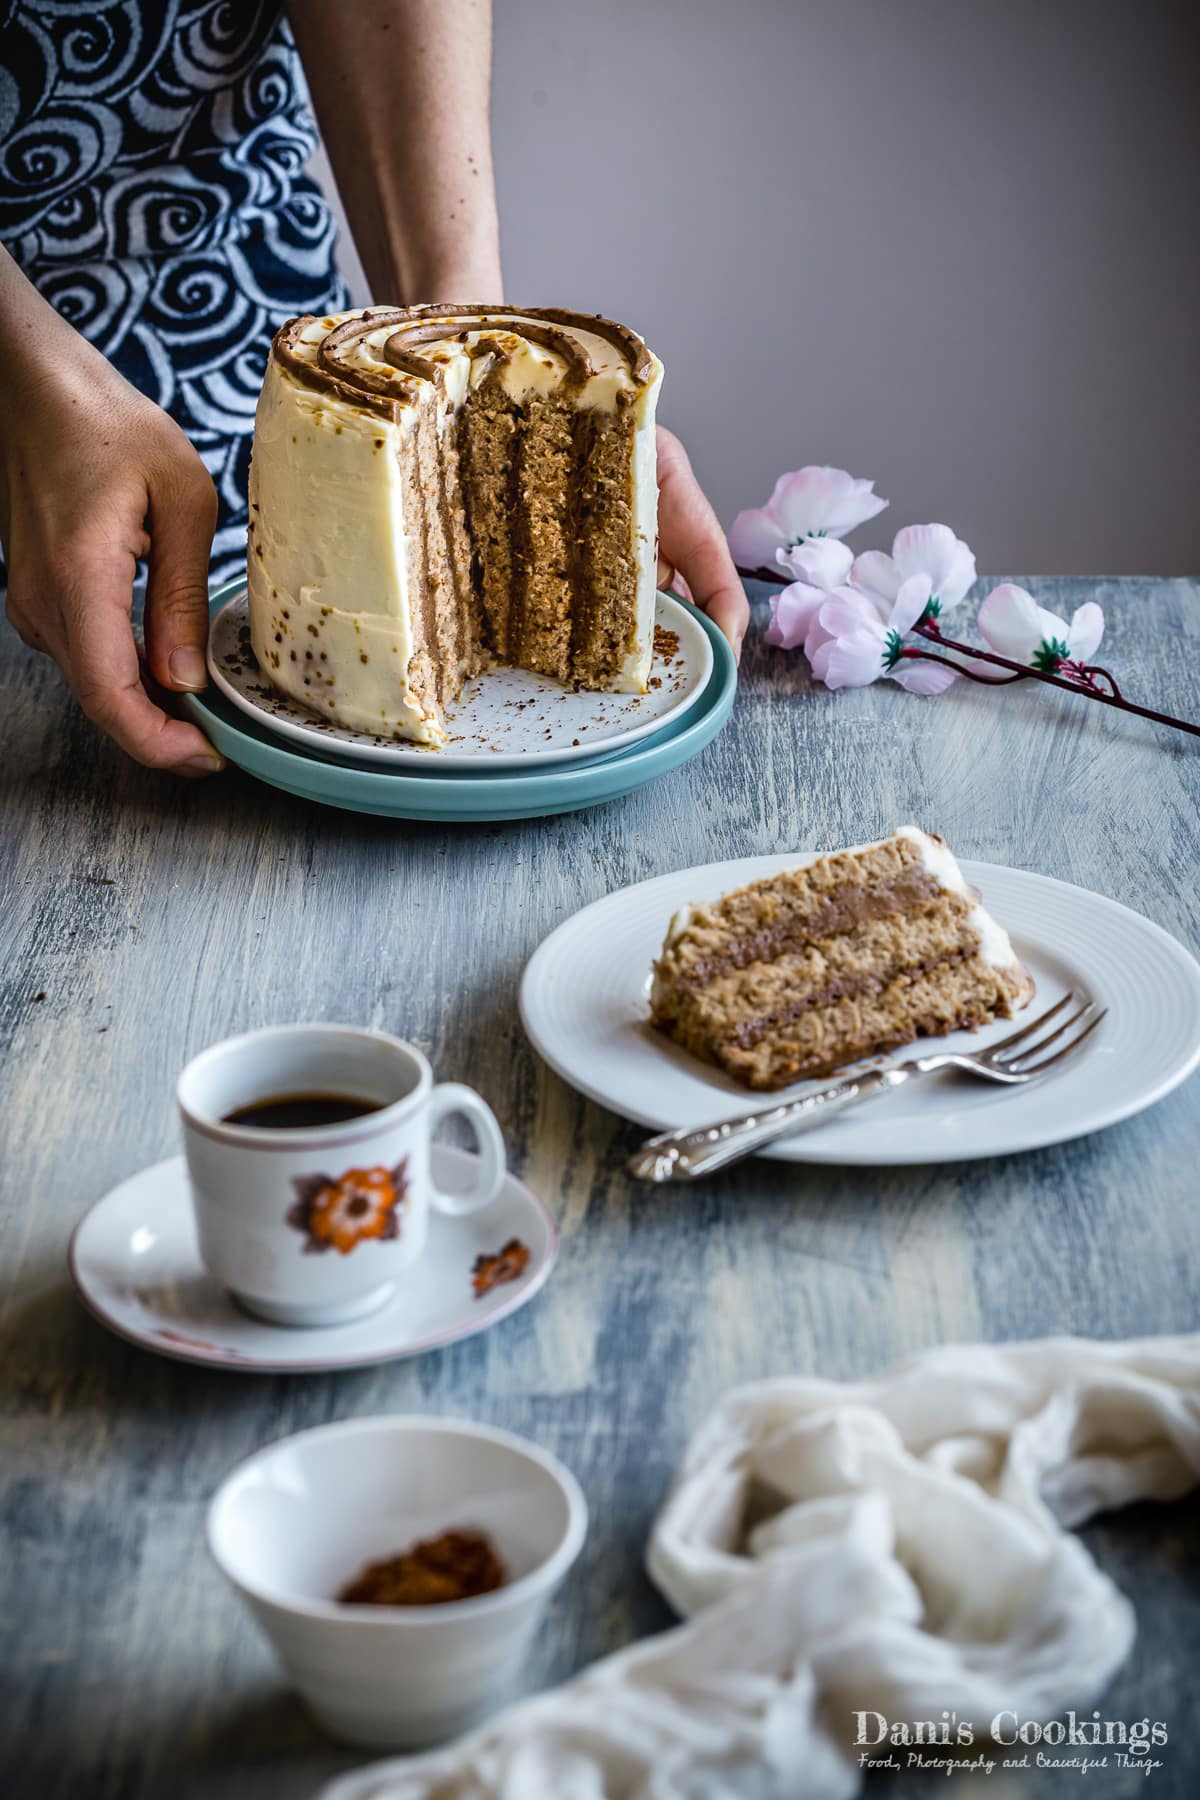 a woman holding a sliced vertical cake next to coffee and a slice